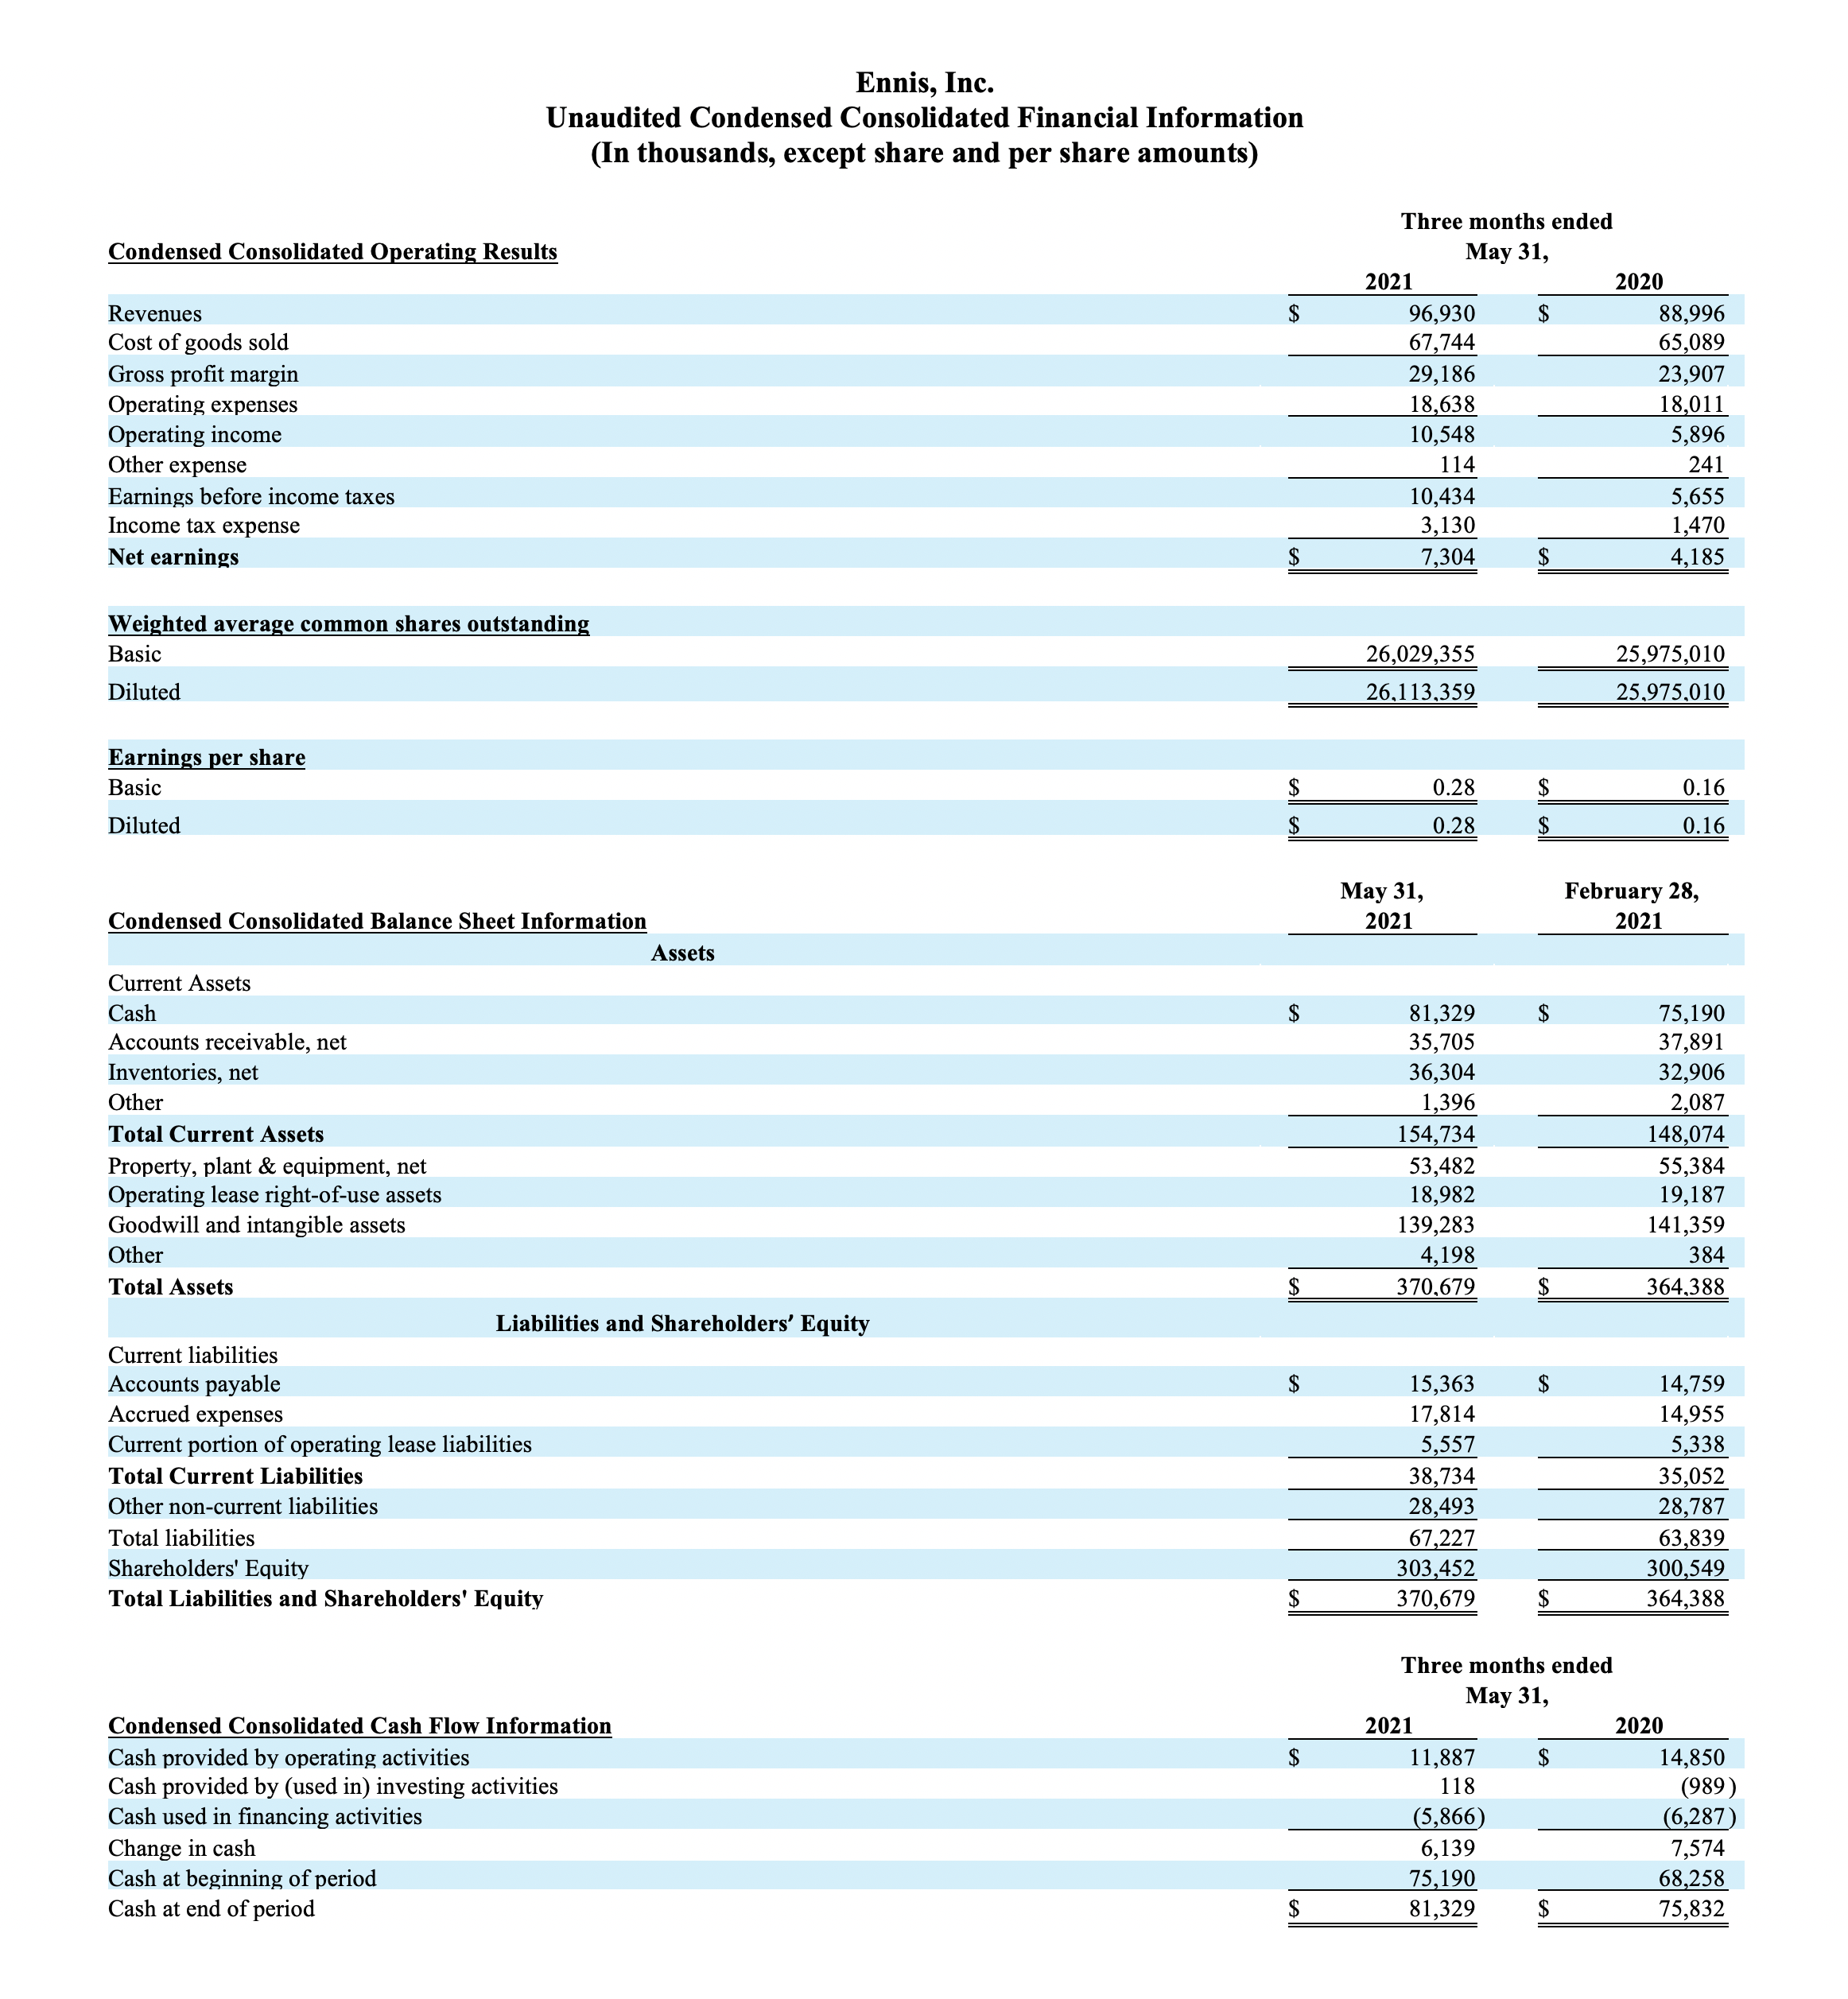 Unaudited Condensed Consolidated Financial Information Qtr Ended MAY 31-2021